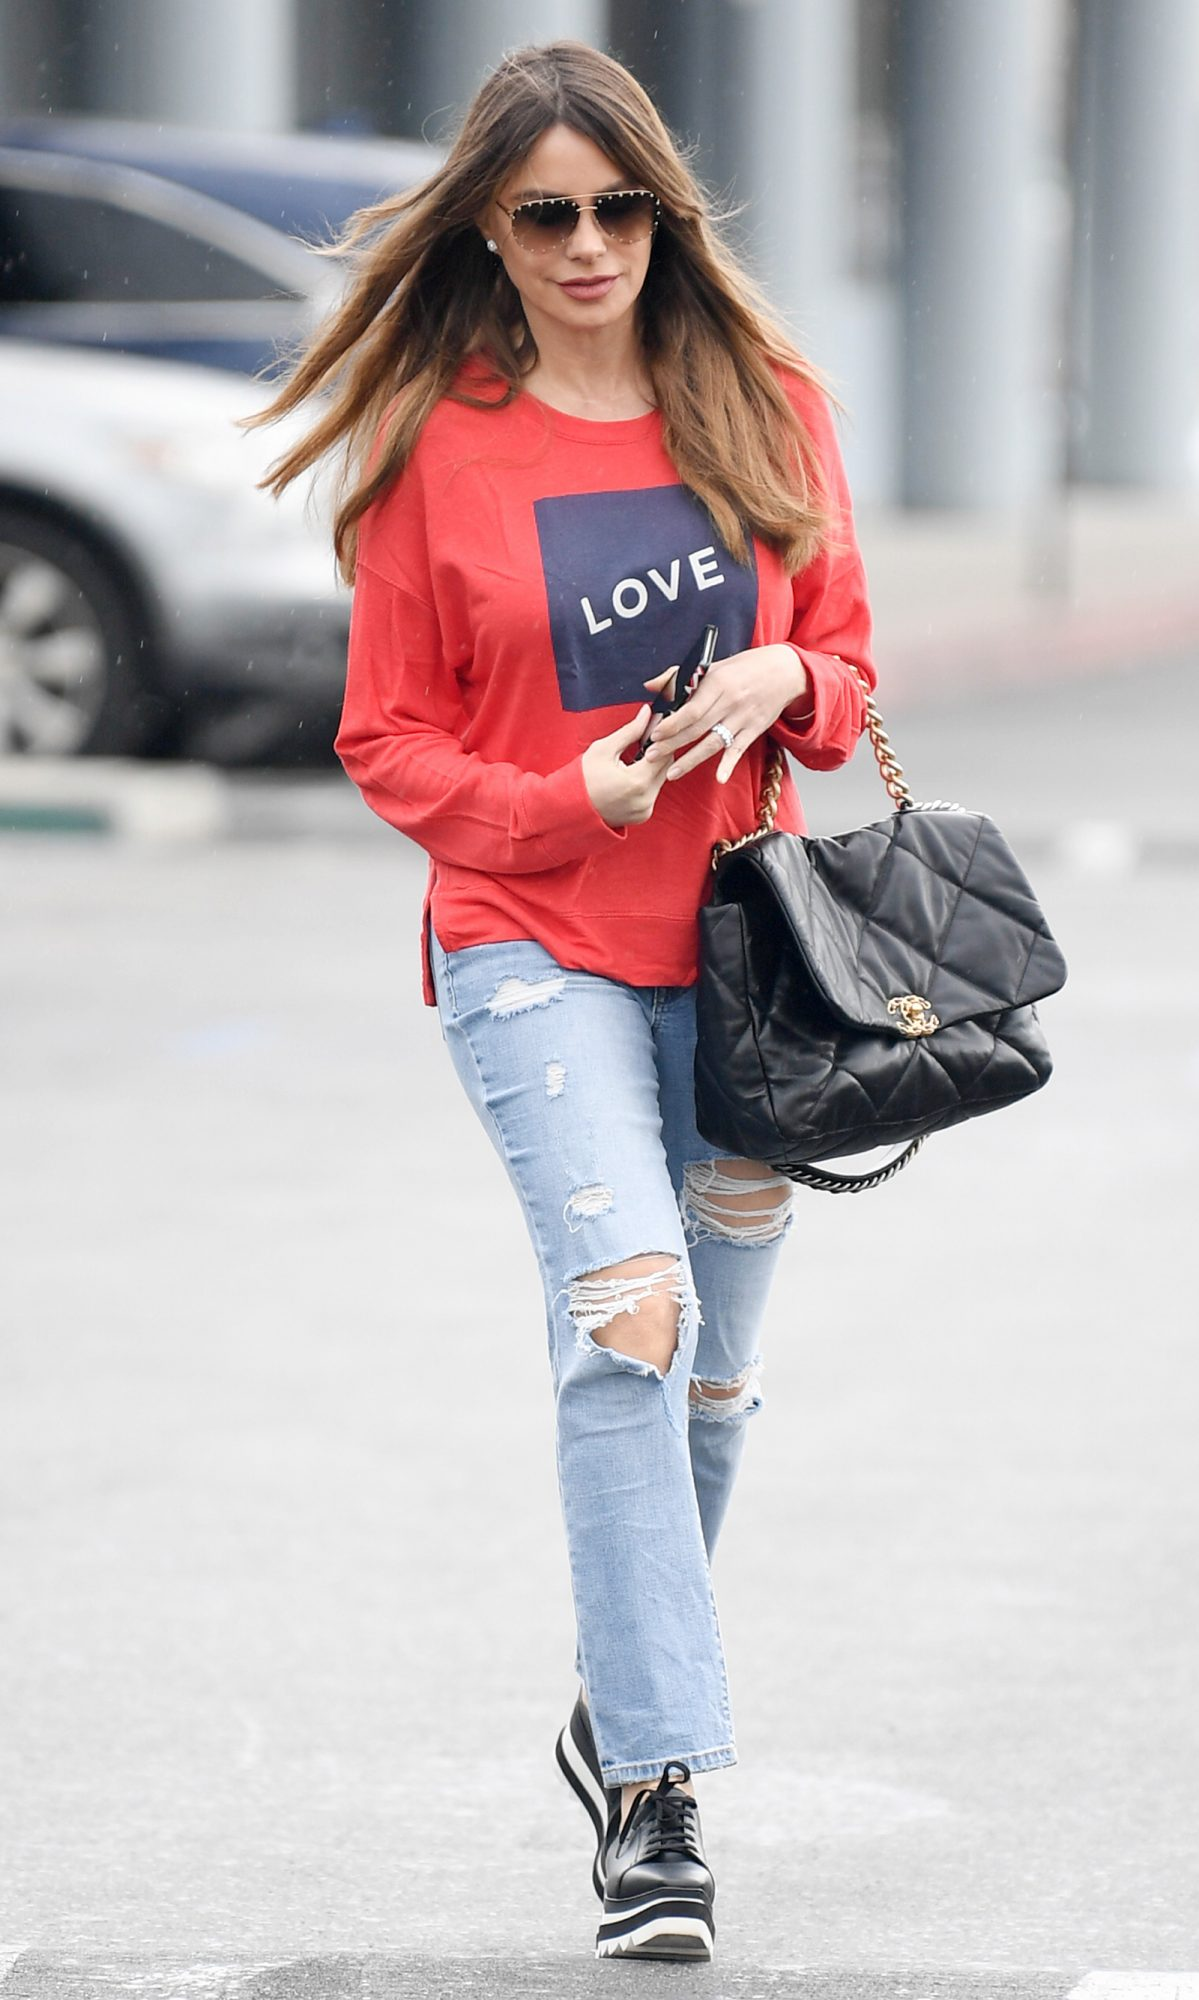 Sofia Vergara is pictured out and about in Los Angeles